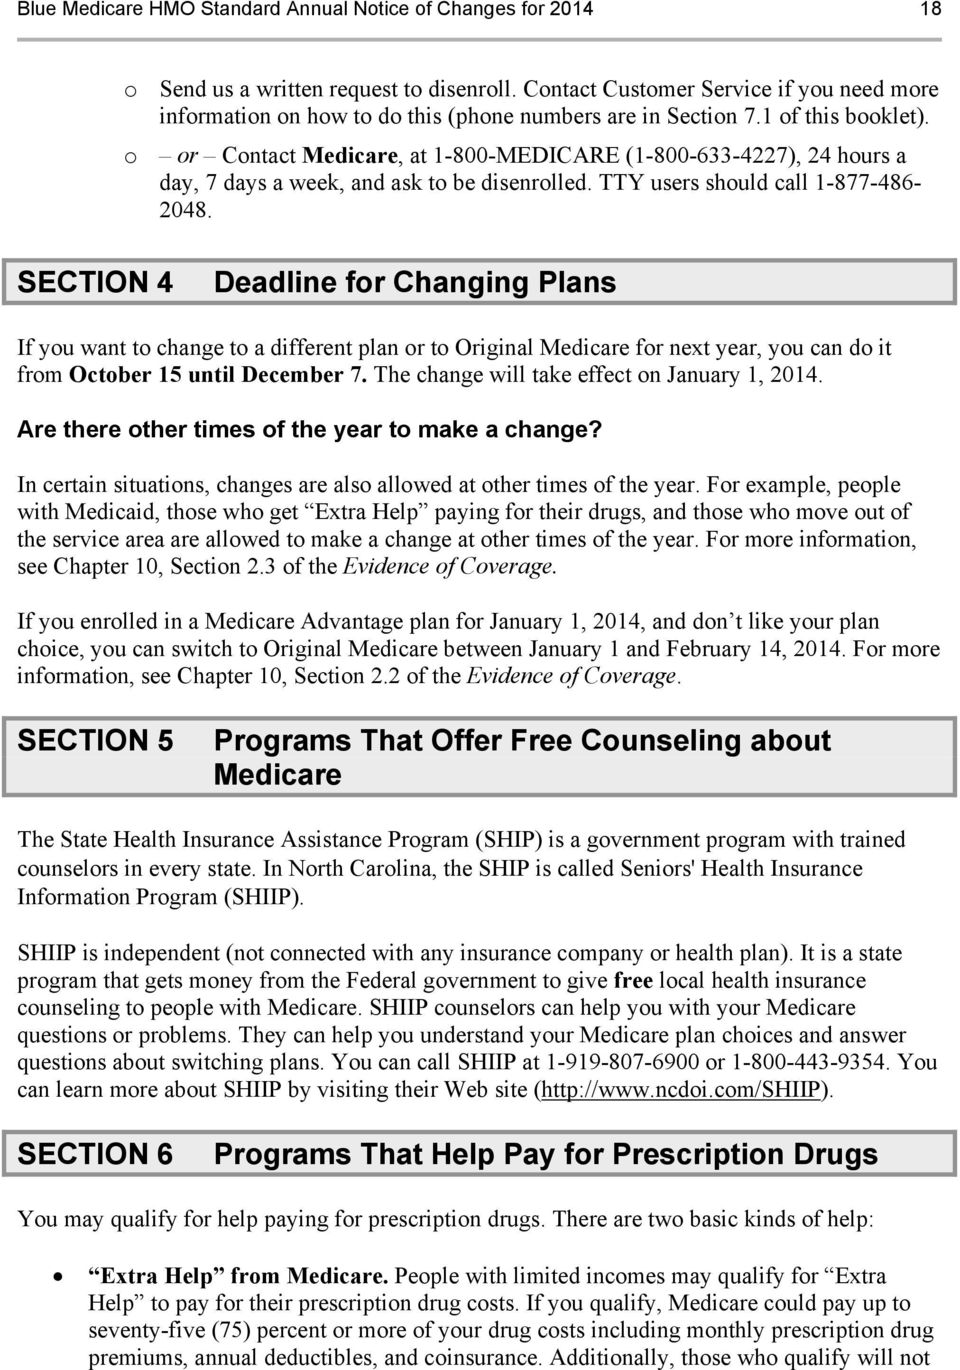 SECTION 4 Deadline for Changing Plans If you want to change to a different plan or to Original Medicare for next year, you can do it from October 15 until December 7.